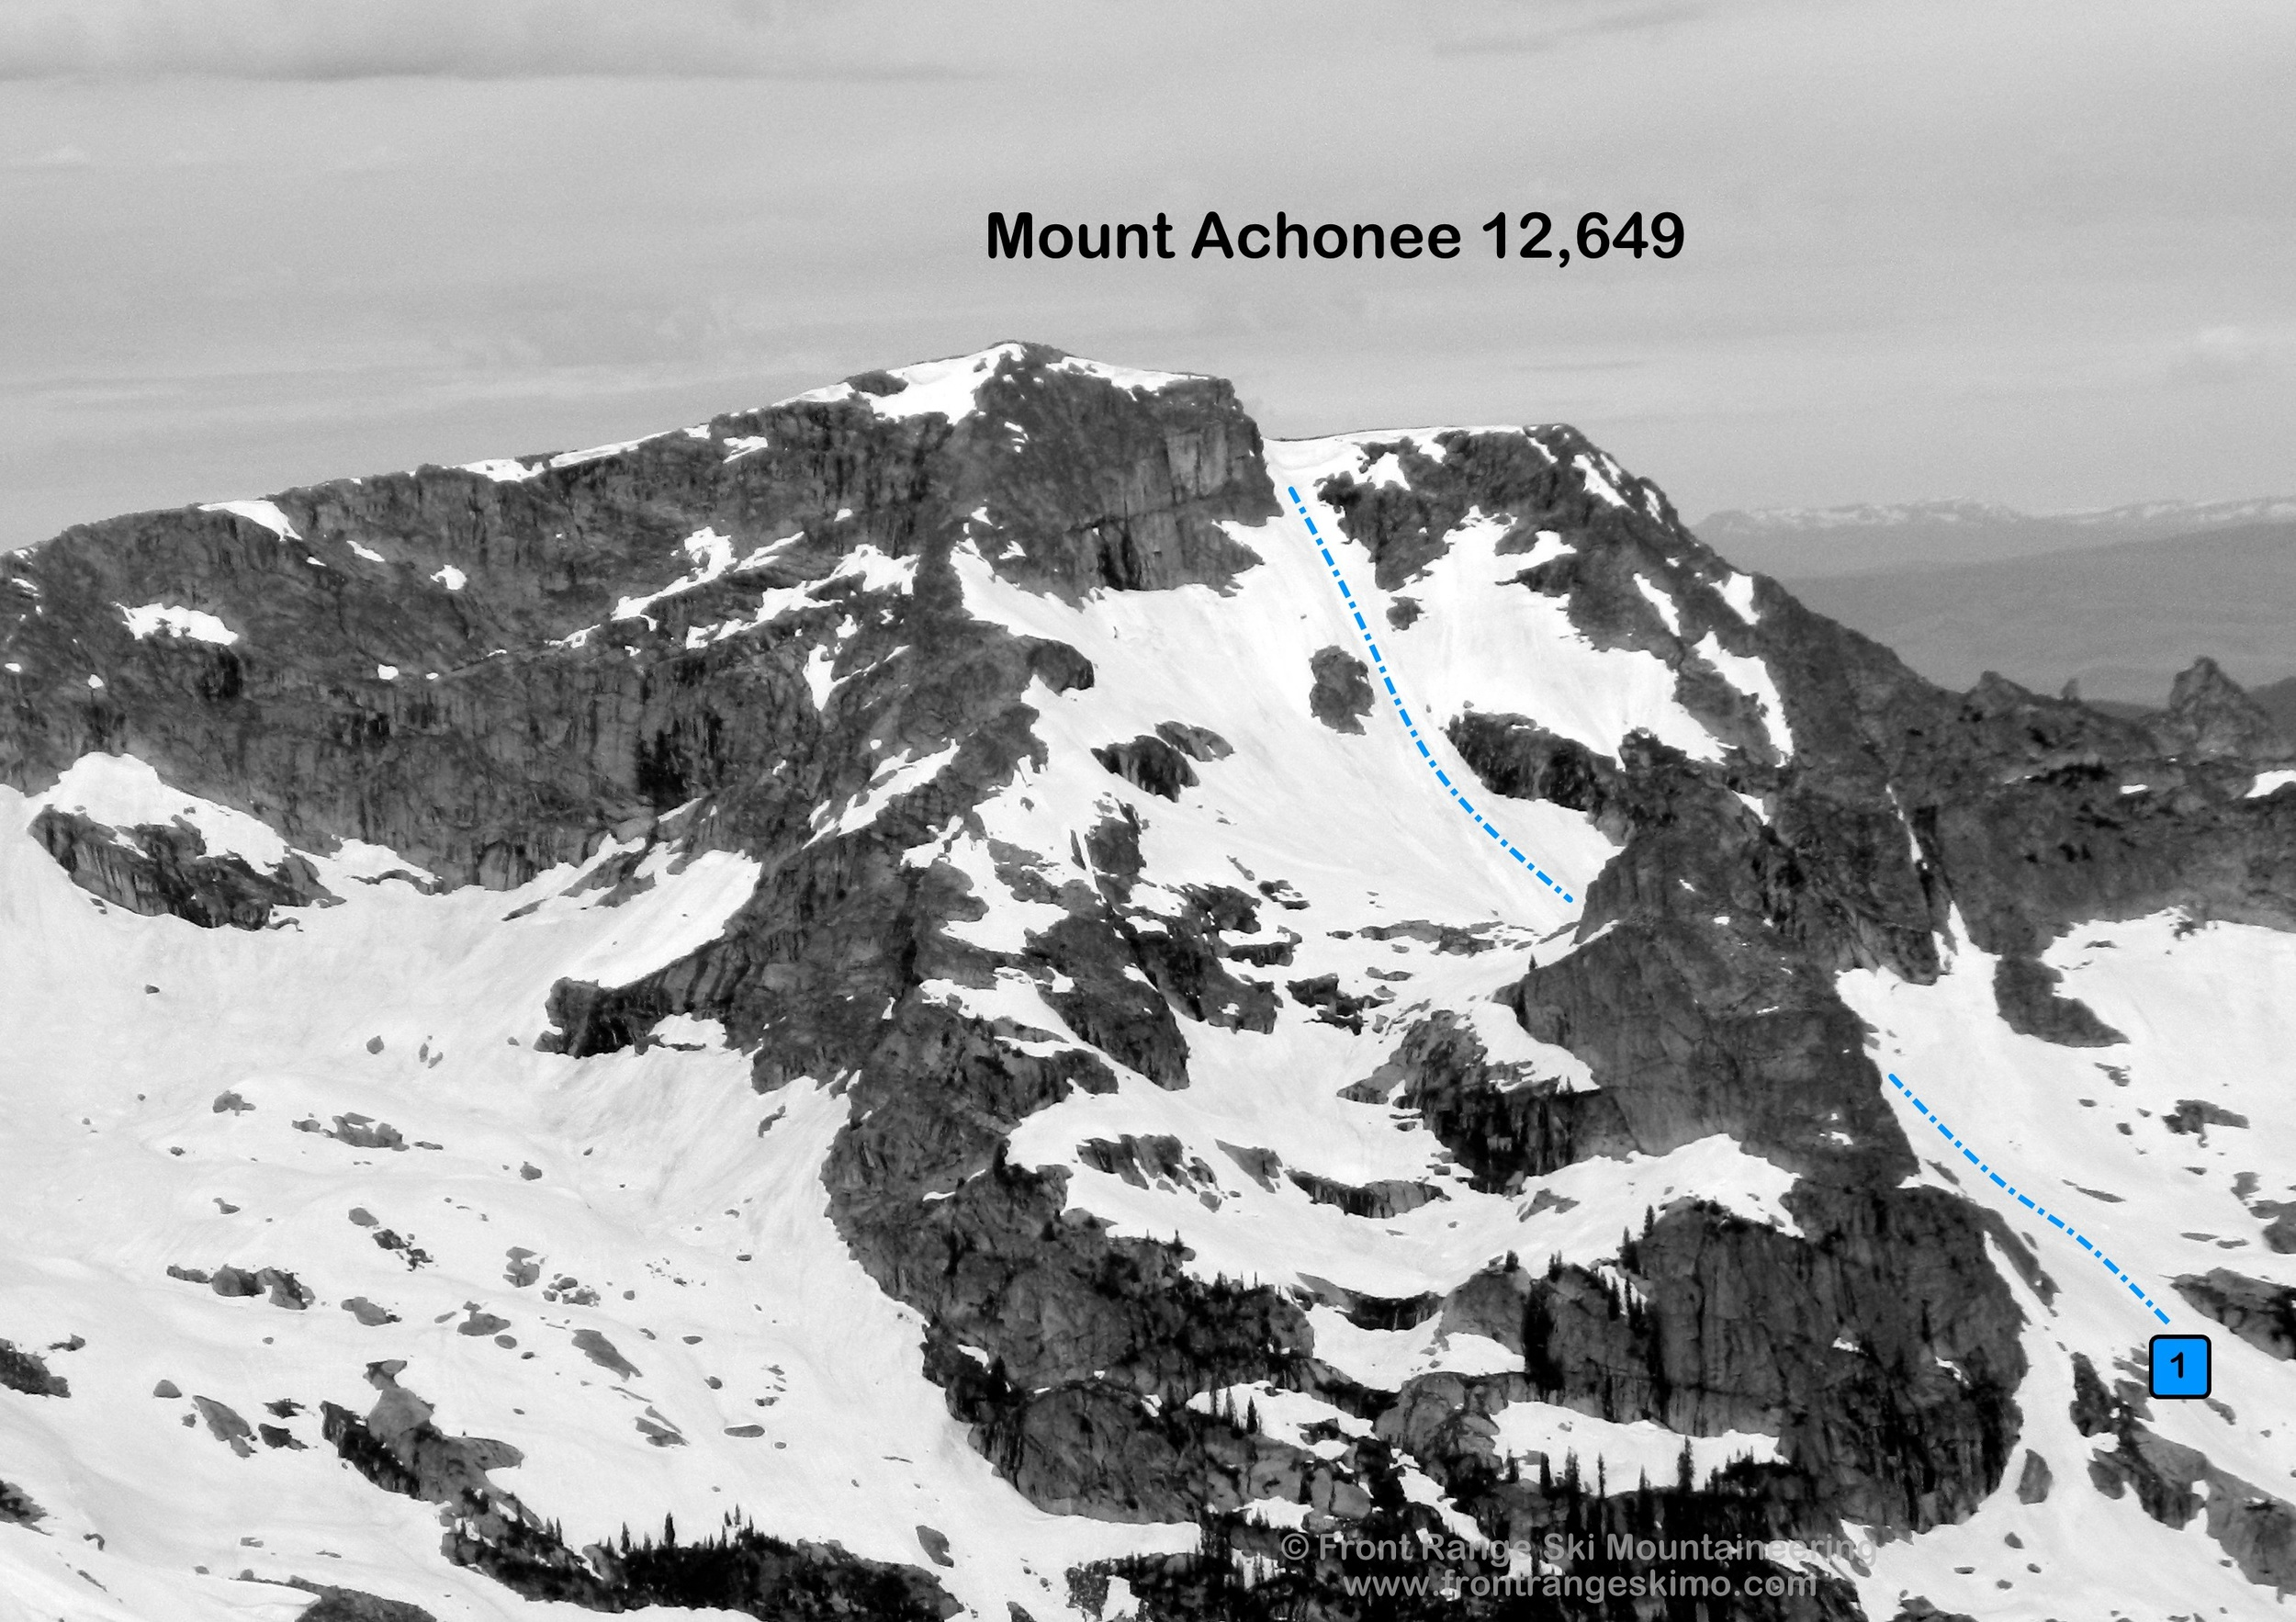 Mount Achonee from the northeast.